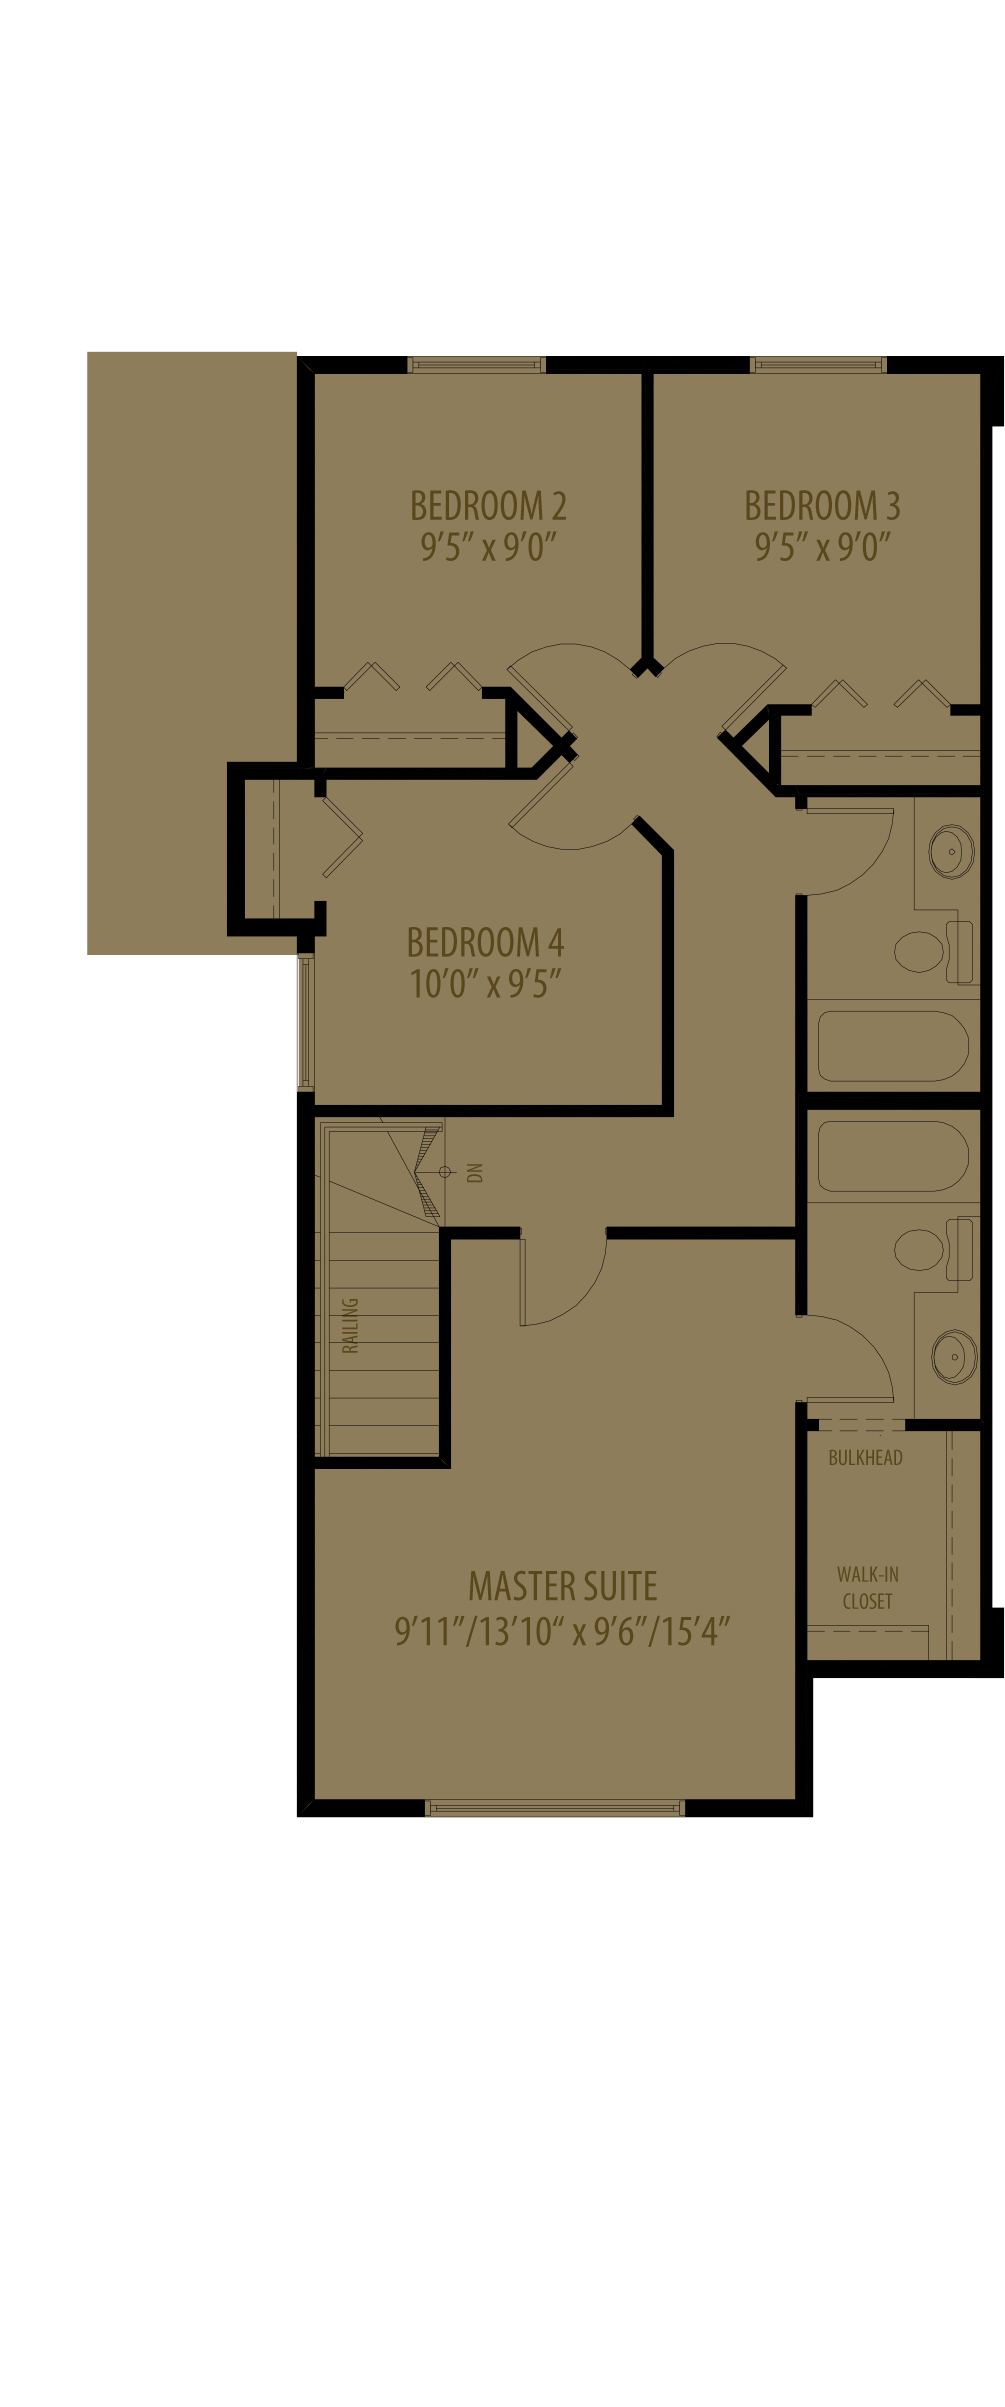 4Th Bedroom Adds 10 Sq Ft